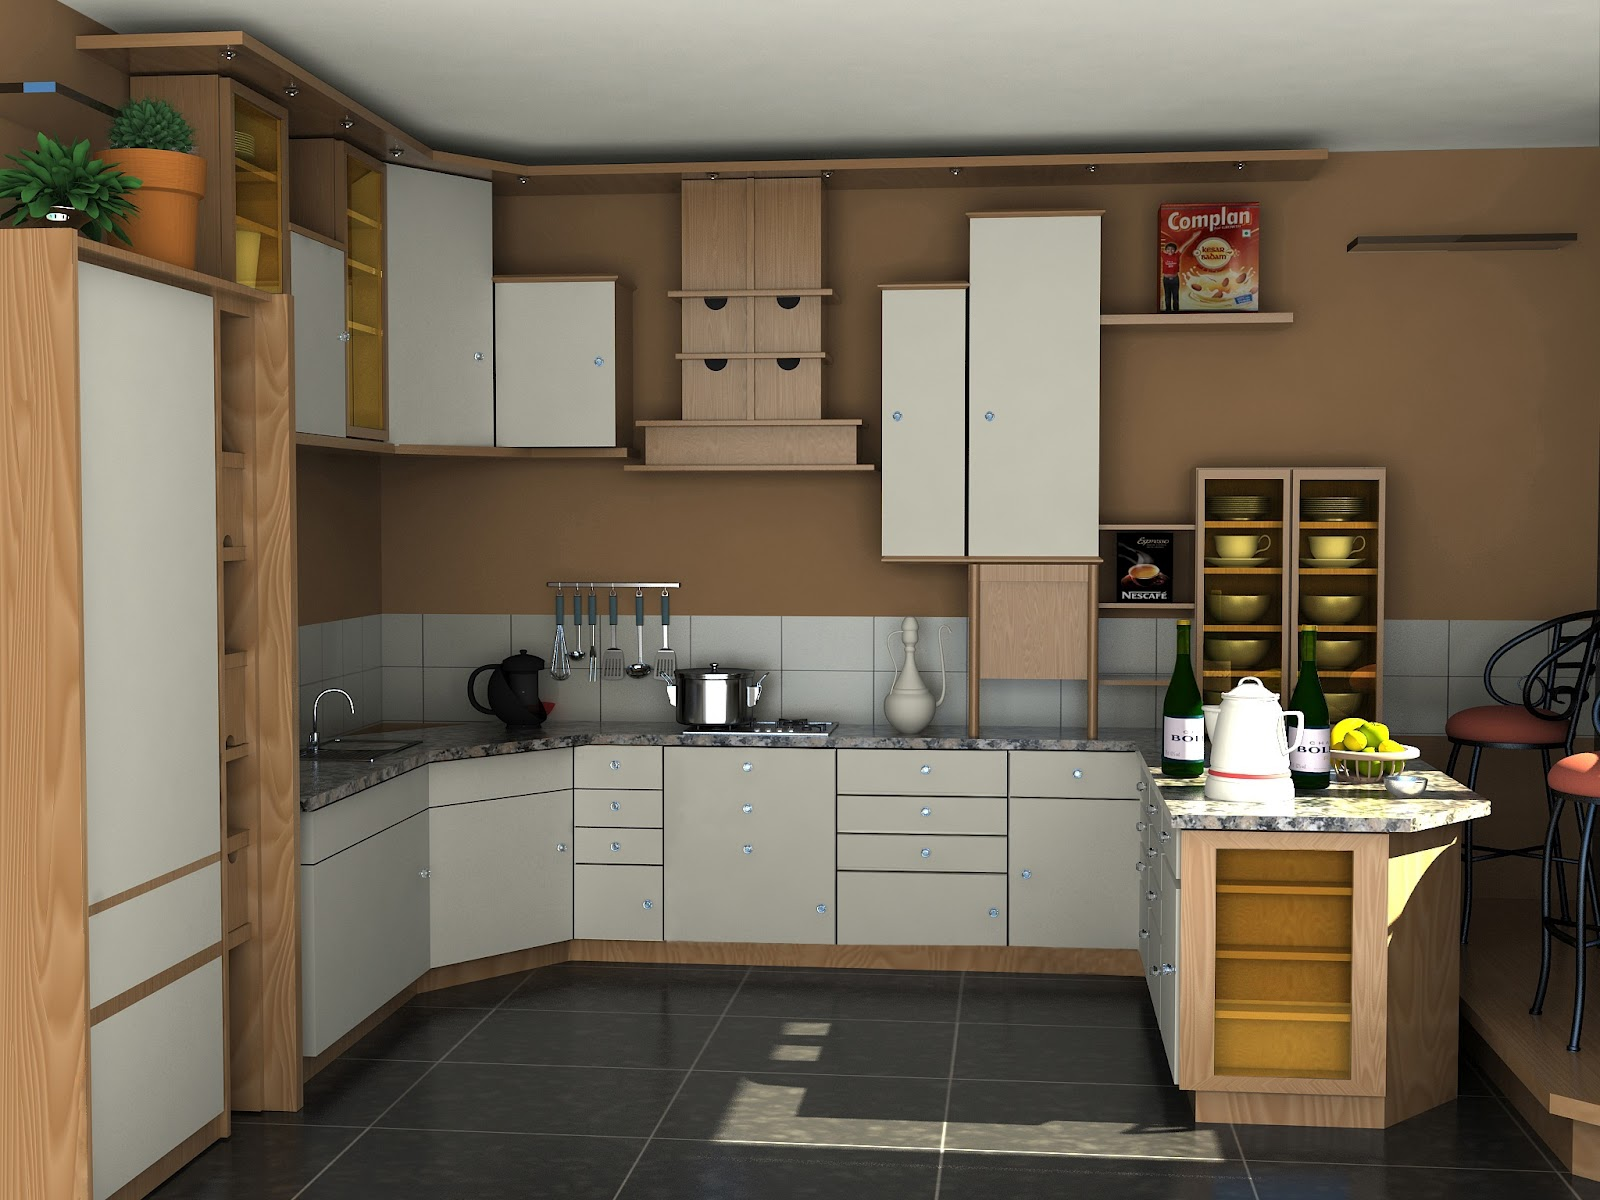 Pleasing Sunnys Blog Kitchen Cabinet 3D Max V Ray Download Free Architecture Designs Scobabritishbridgeorg